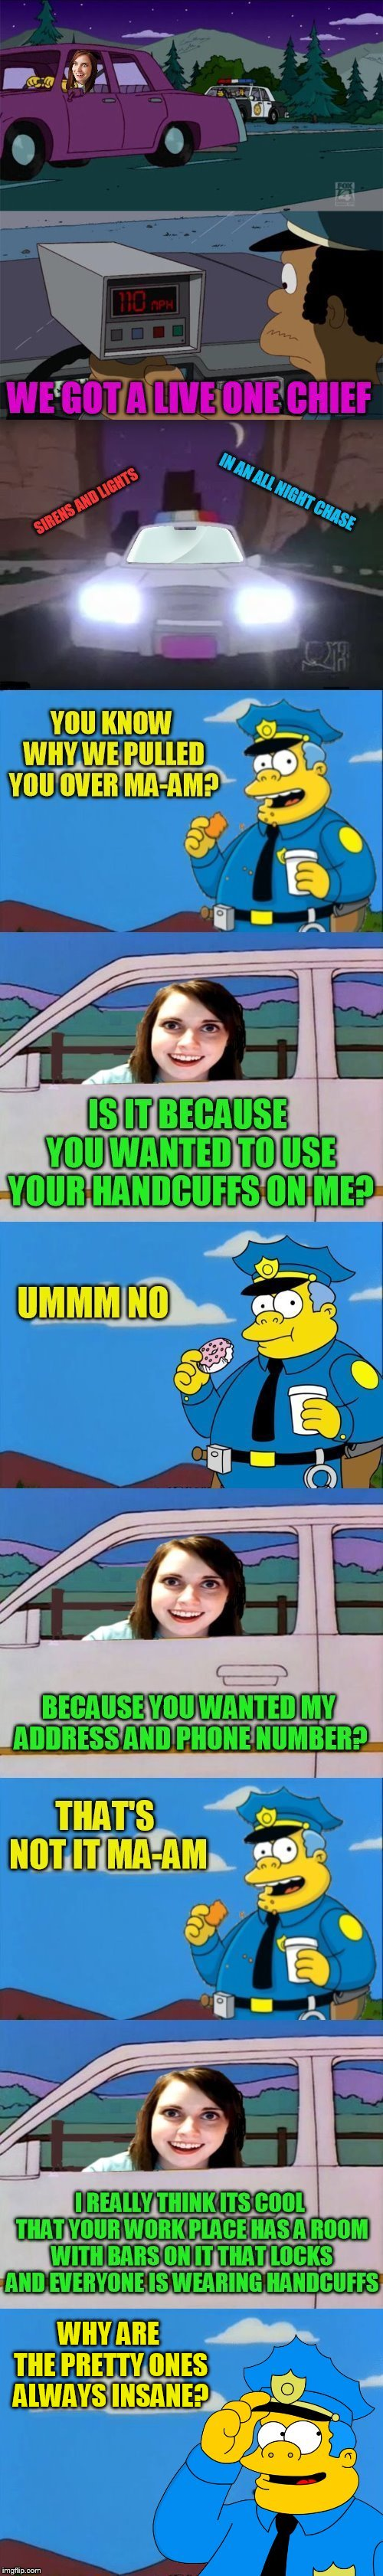 The Simpson's And Overly Attached Girlfriend Crossover! | WE GOT A LIVE ONE CHIEF; IN AN ALL NIGHT CHASE; SIRENS AND LIGHTS; YOU KNOW WHY WE PULLED YOU OVER MA-AM? IS IT BECAUSE YOU WANTED TO USE YO | image tagged in memes,the simpsons,overly attached girlfriend,crossover,chief wiggum,insane | made w/ Imgflip meme maker